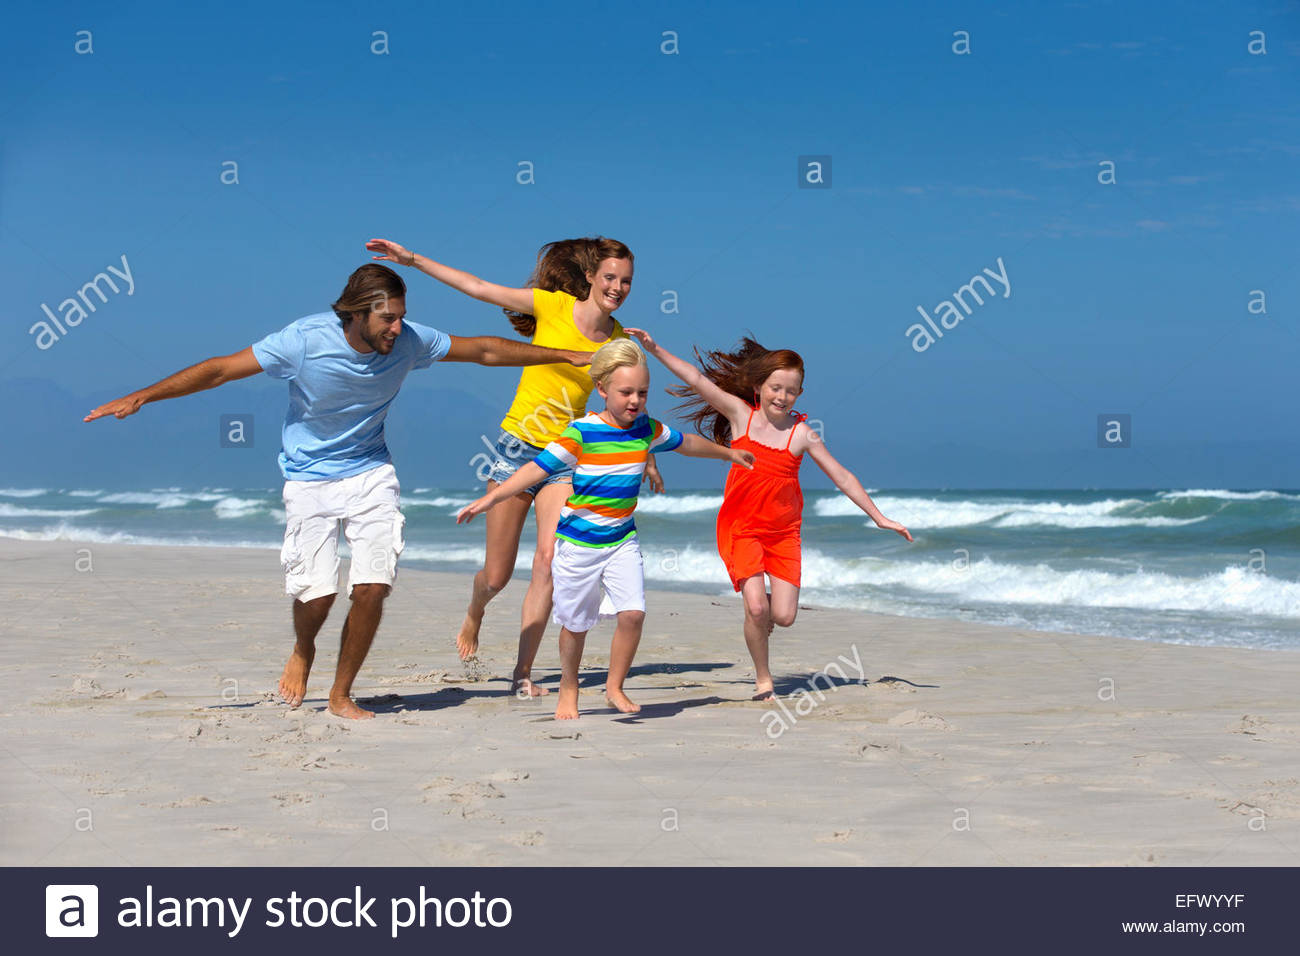 Happy family, pretending to fly, running on sunny beach - Stock Image